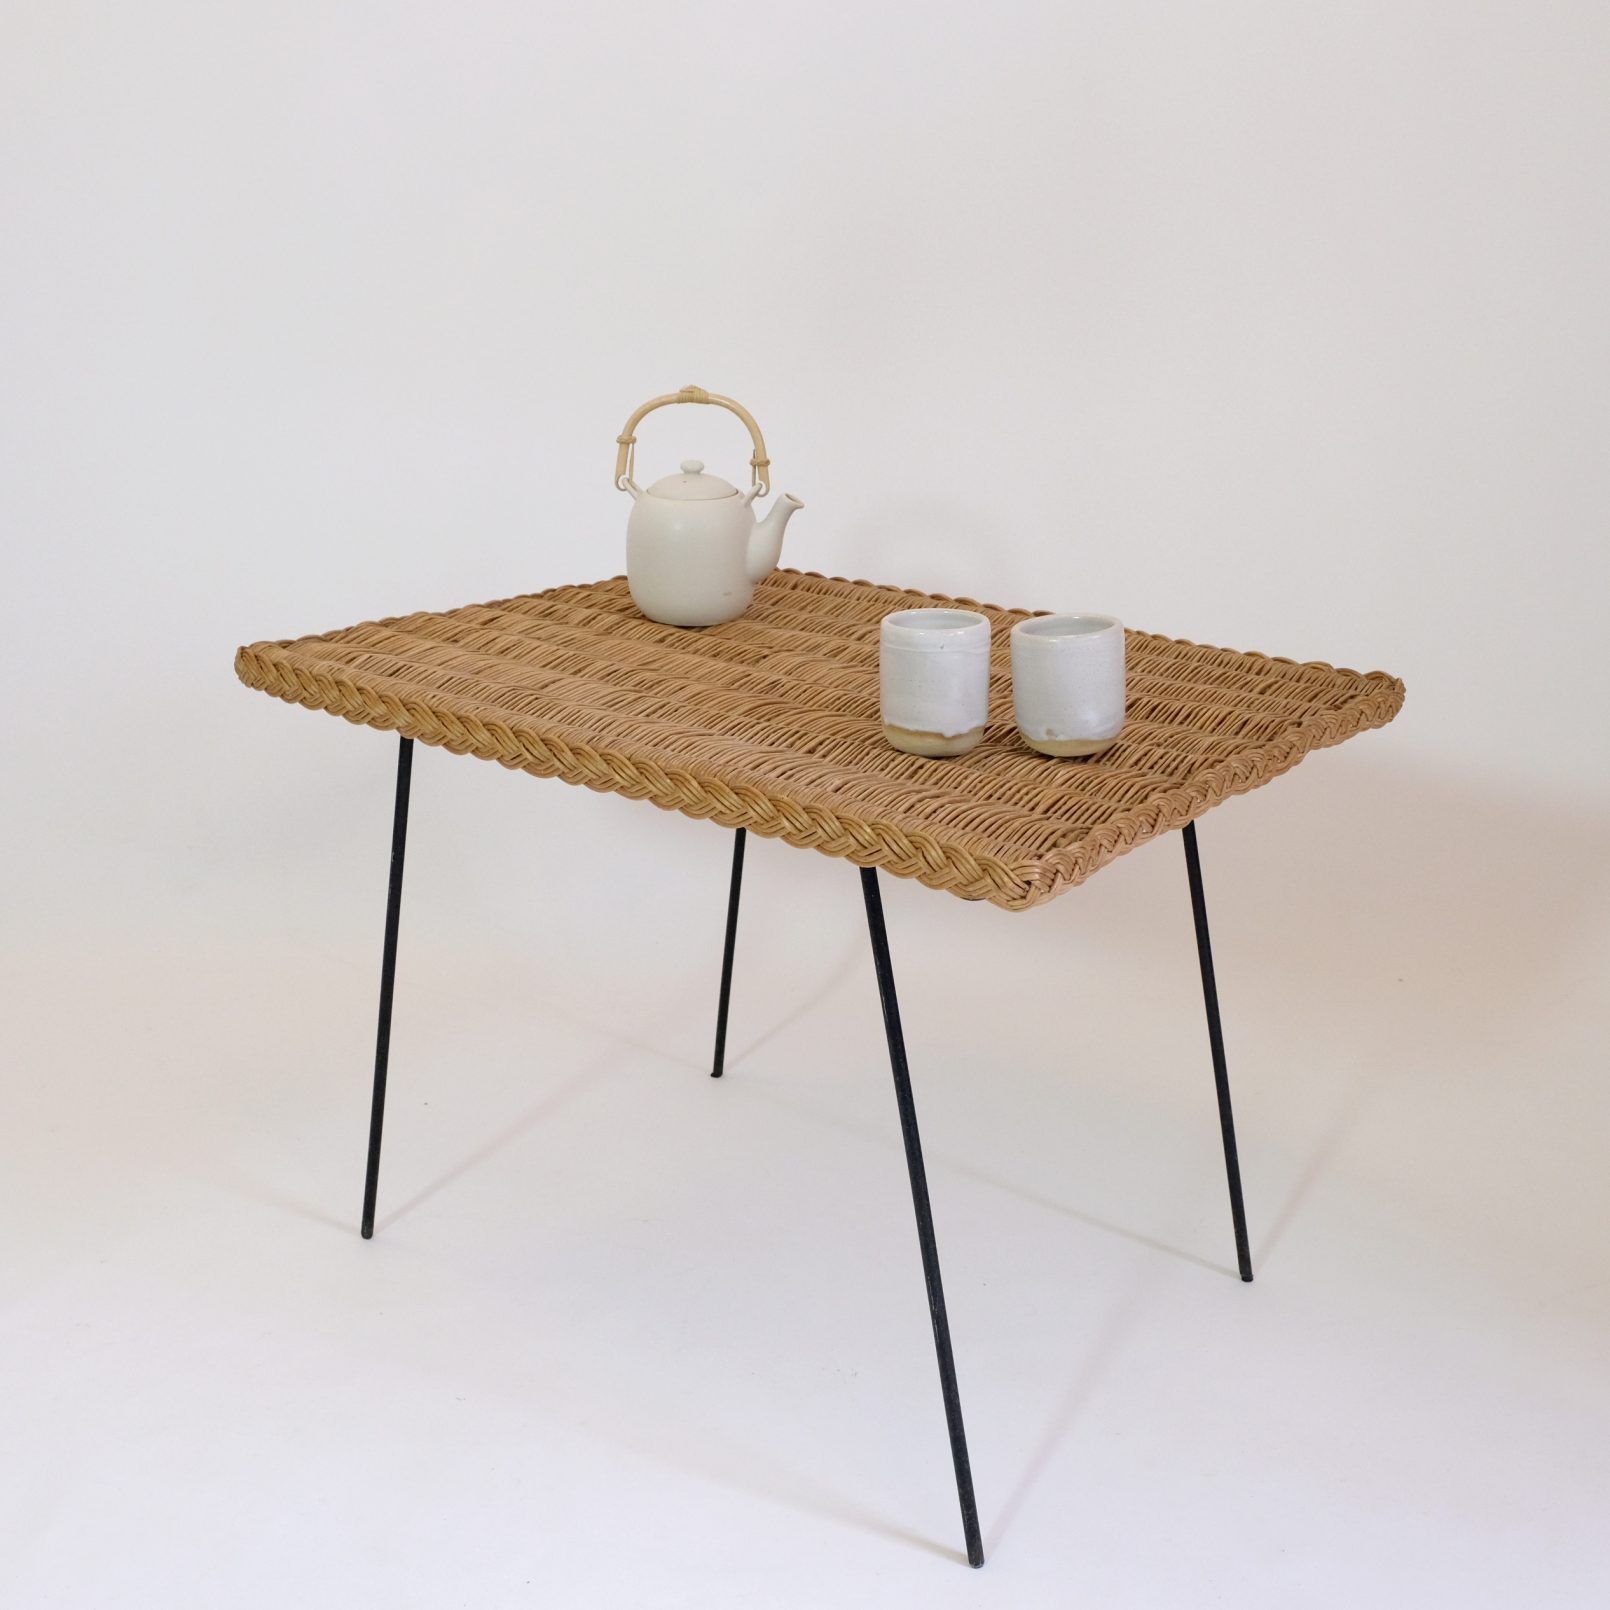 Wicker coffee table from the sixties.